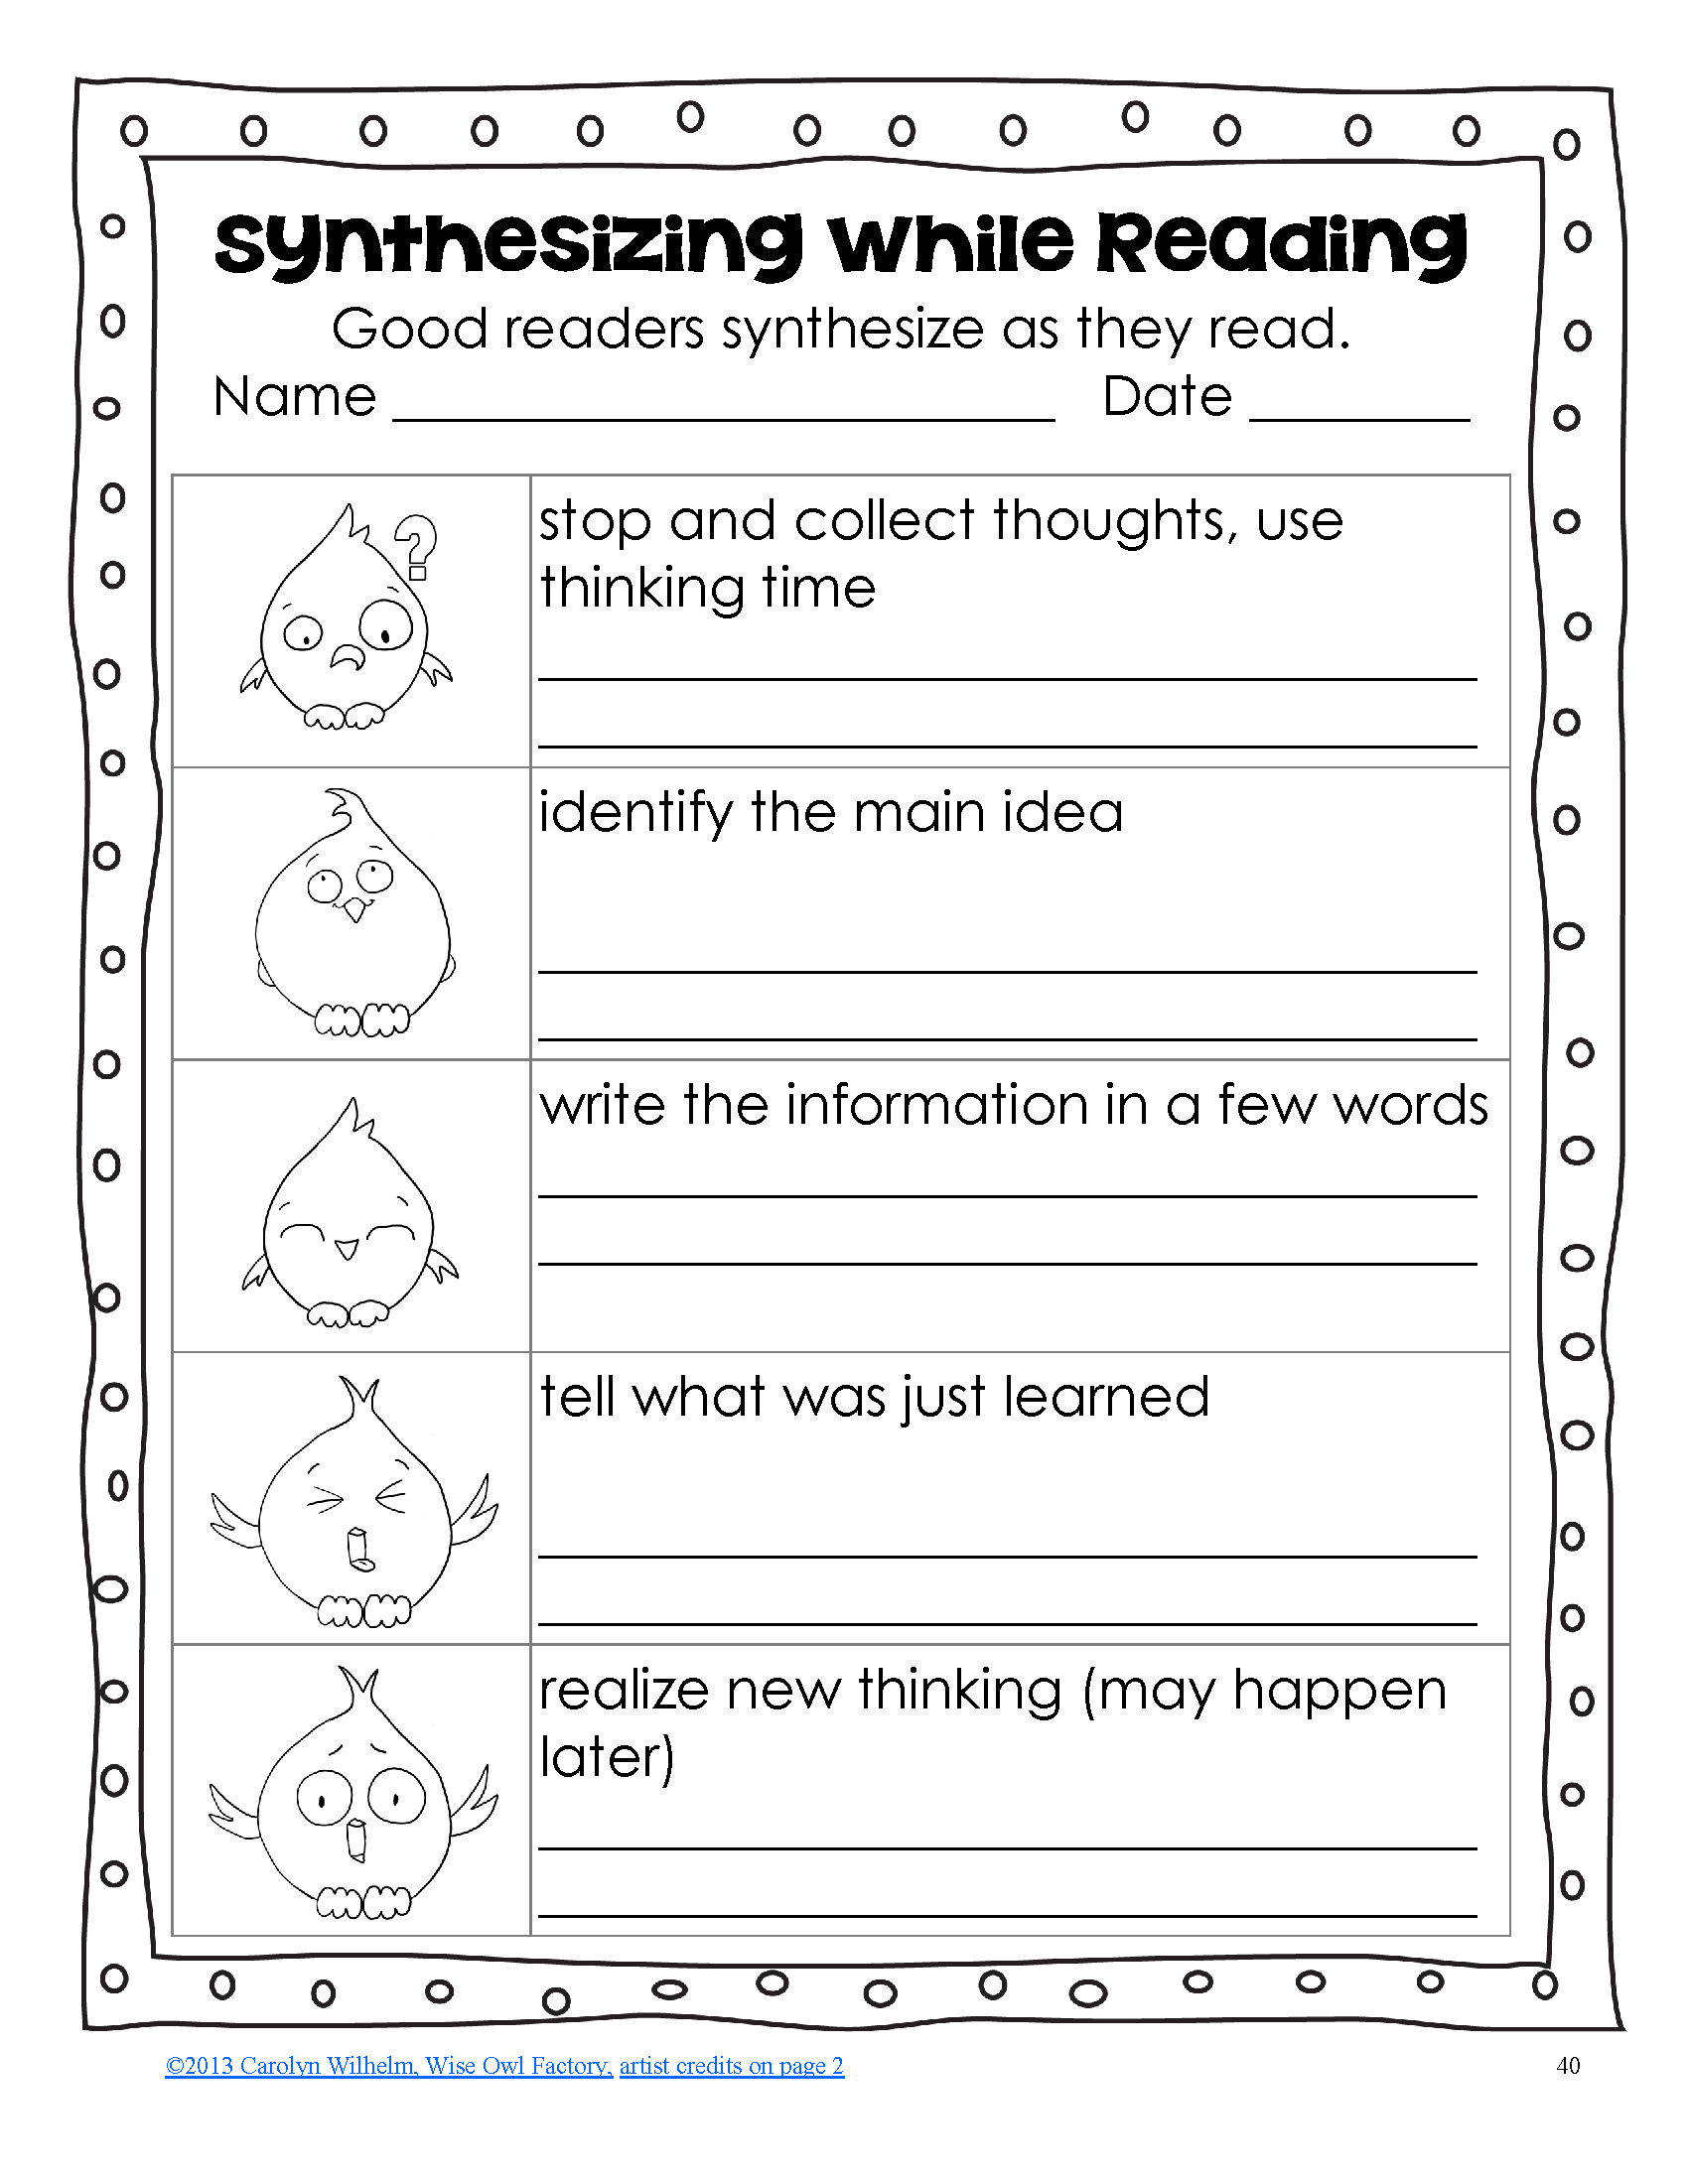 Synthesizing As A Reading Strategy Power Point Student